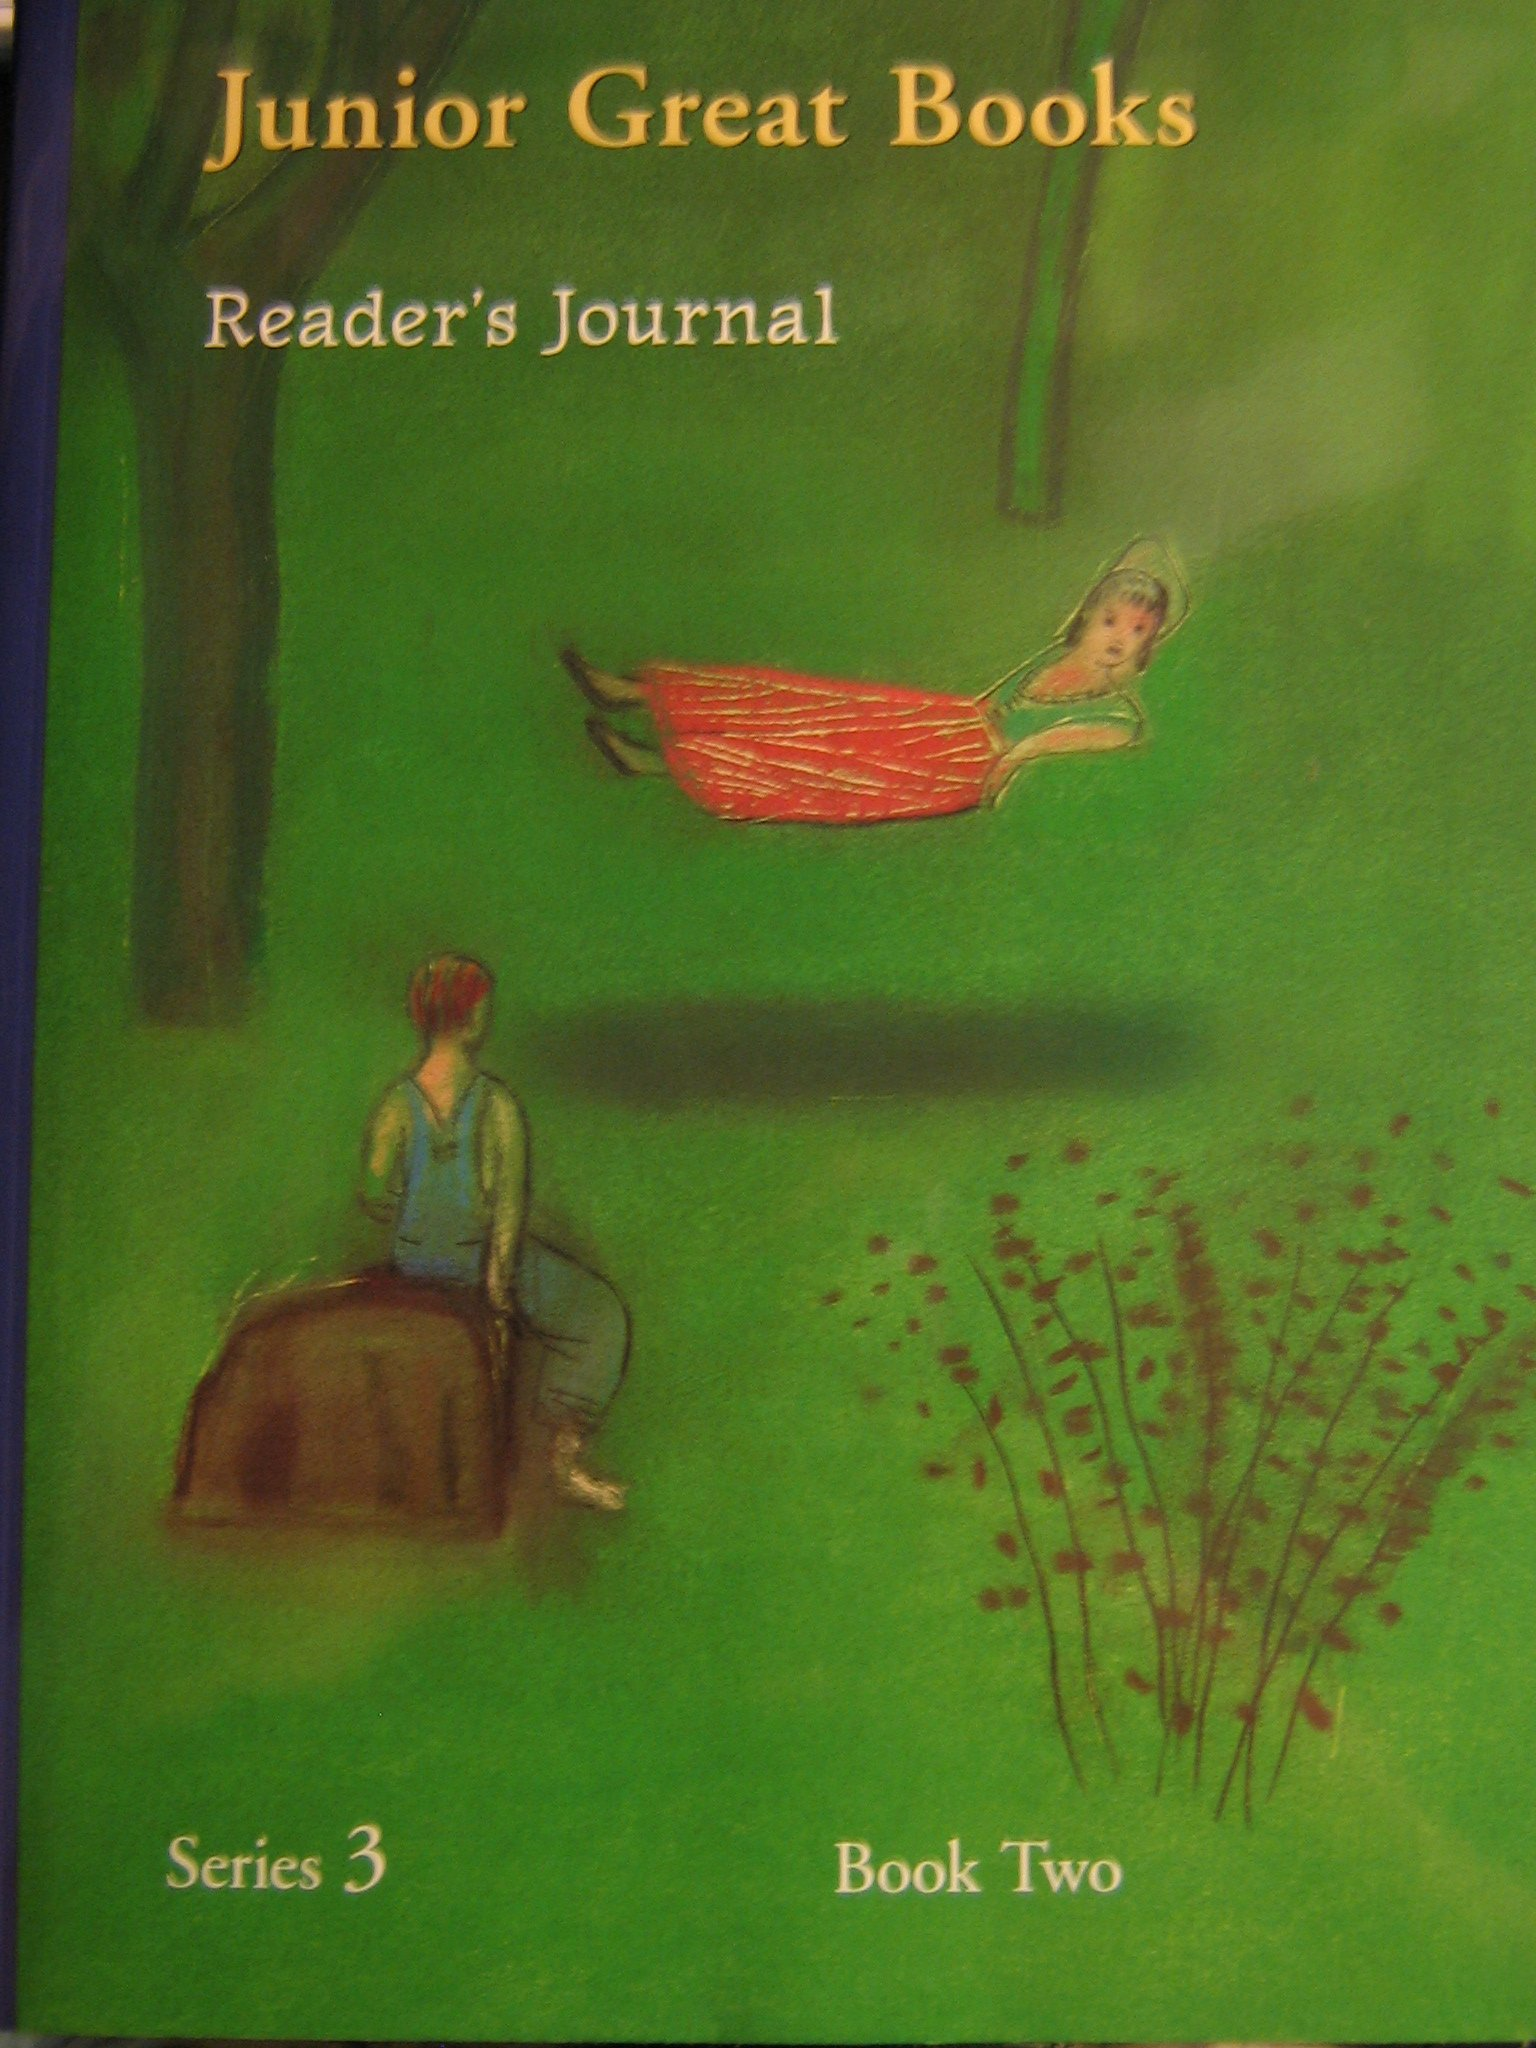 Download Junior Great Books (Reader's Journal) Book Two (3) PDF